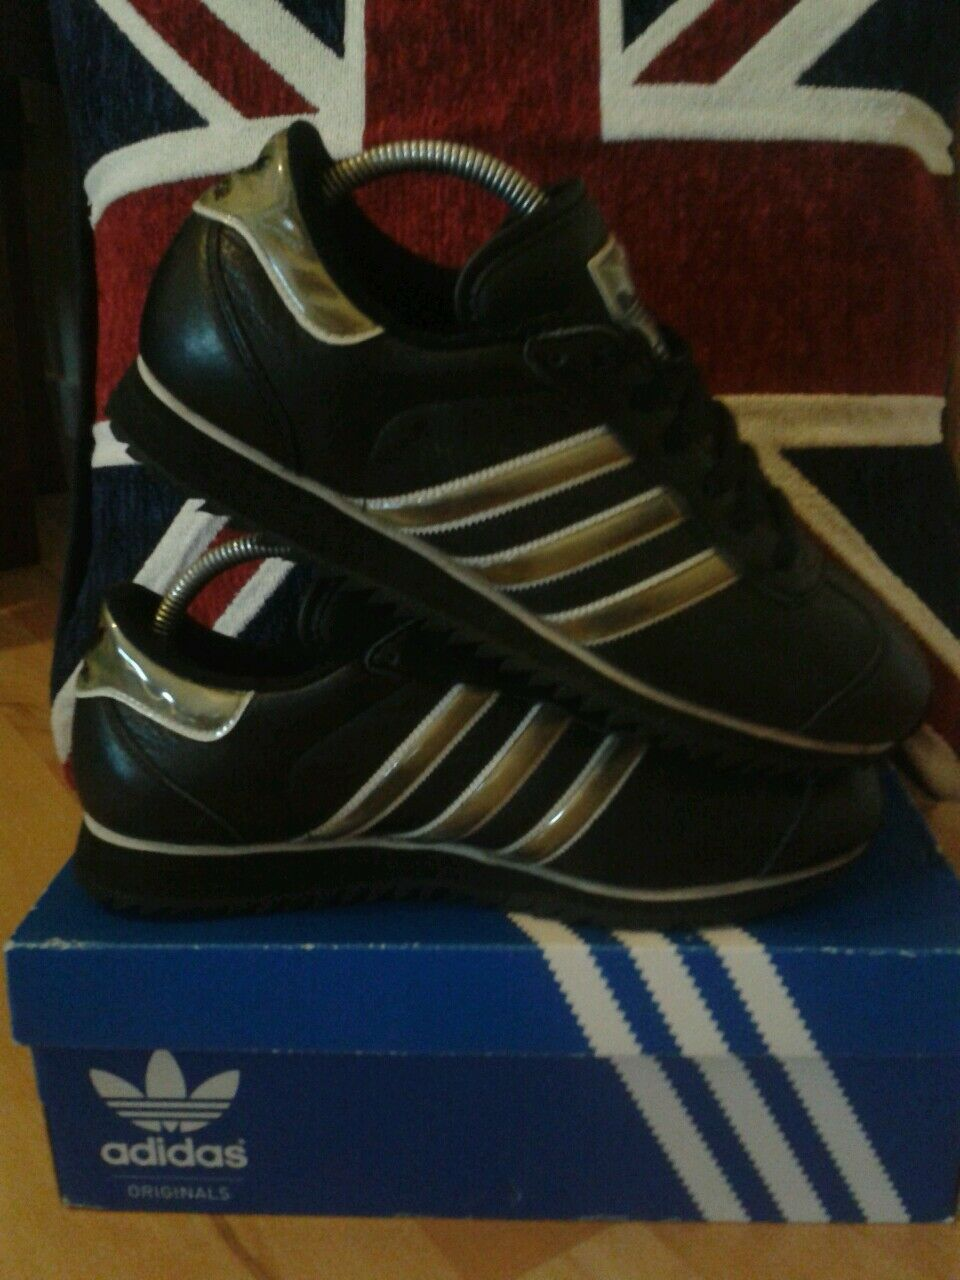 Mens Adidas Trainers size 8 Price reduction. The latest discount shoes for men and women